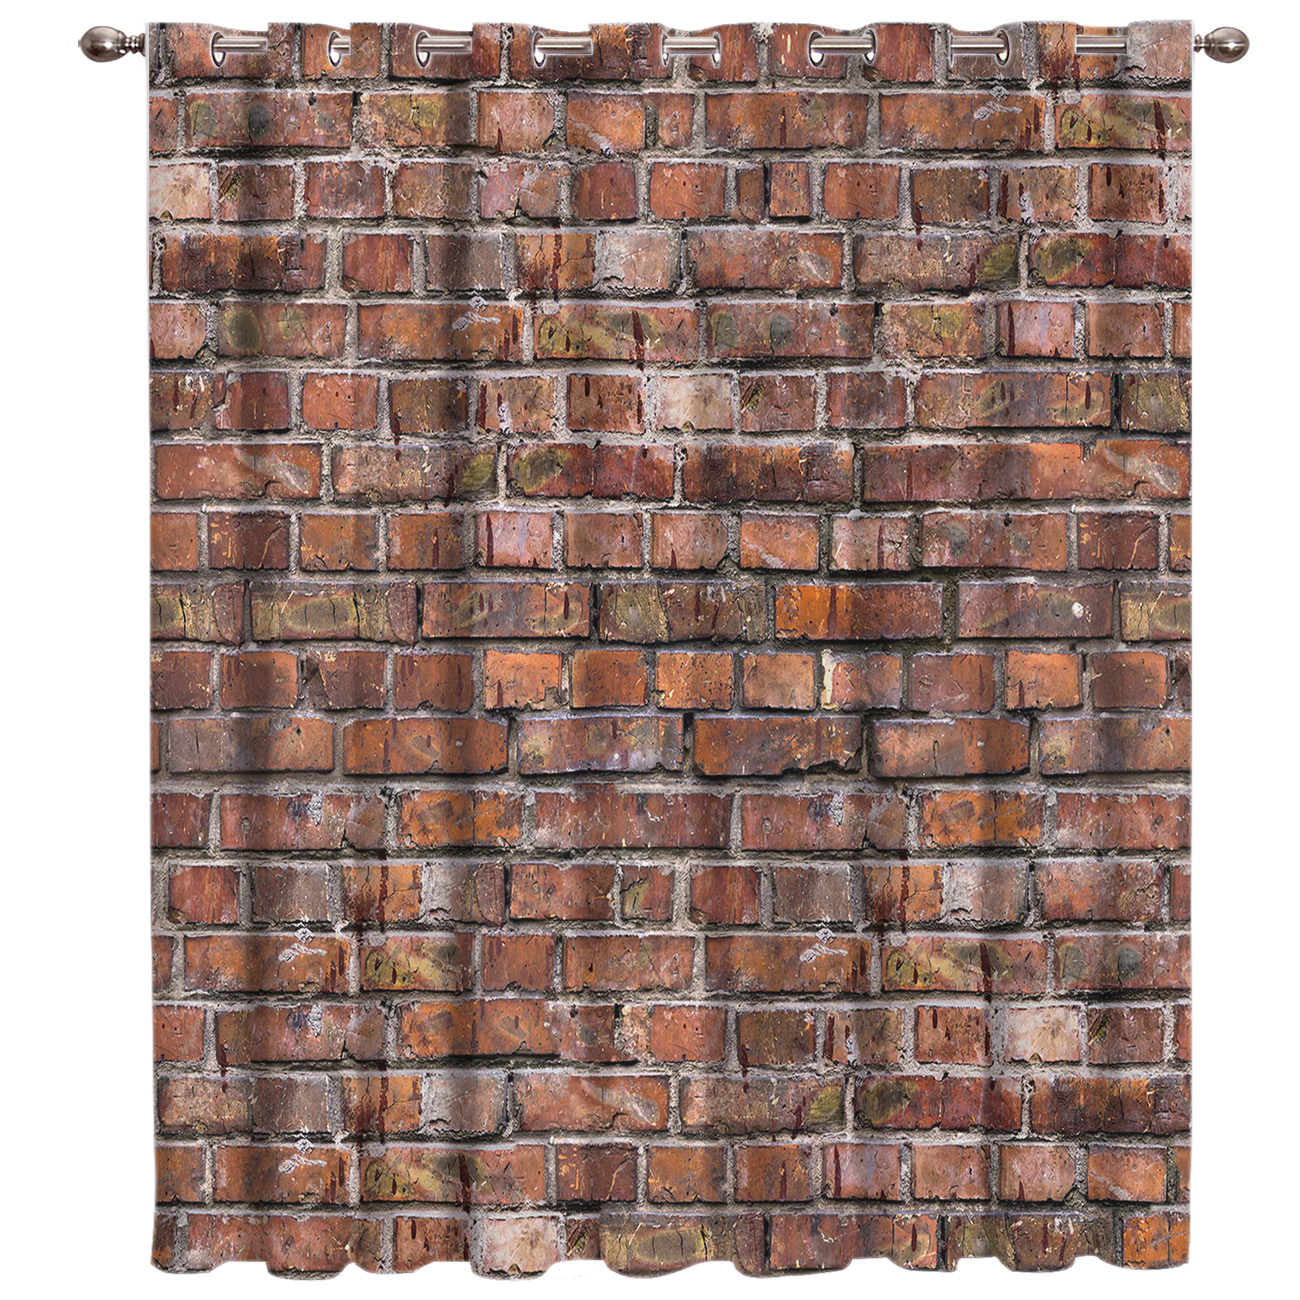 Crack In Stone Brick Wall Retro Red Stone Wallpaper Window Treatments Curtains Valance Window Curtains Dark Window Blinds Living